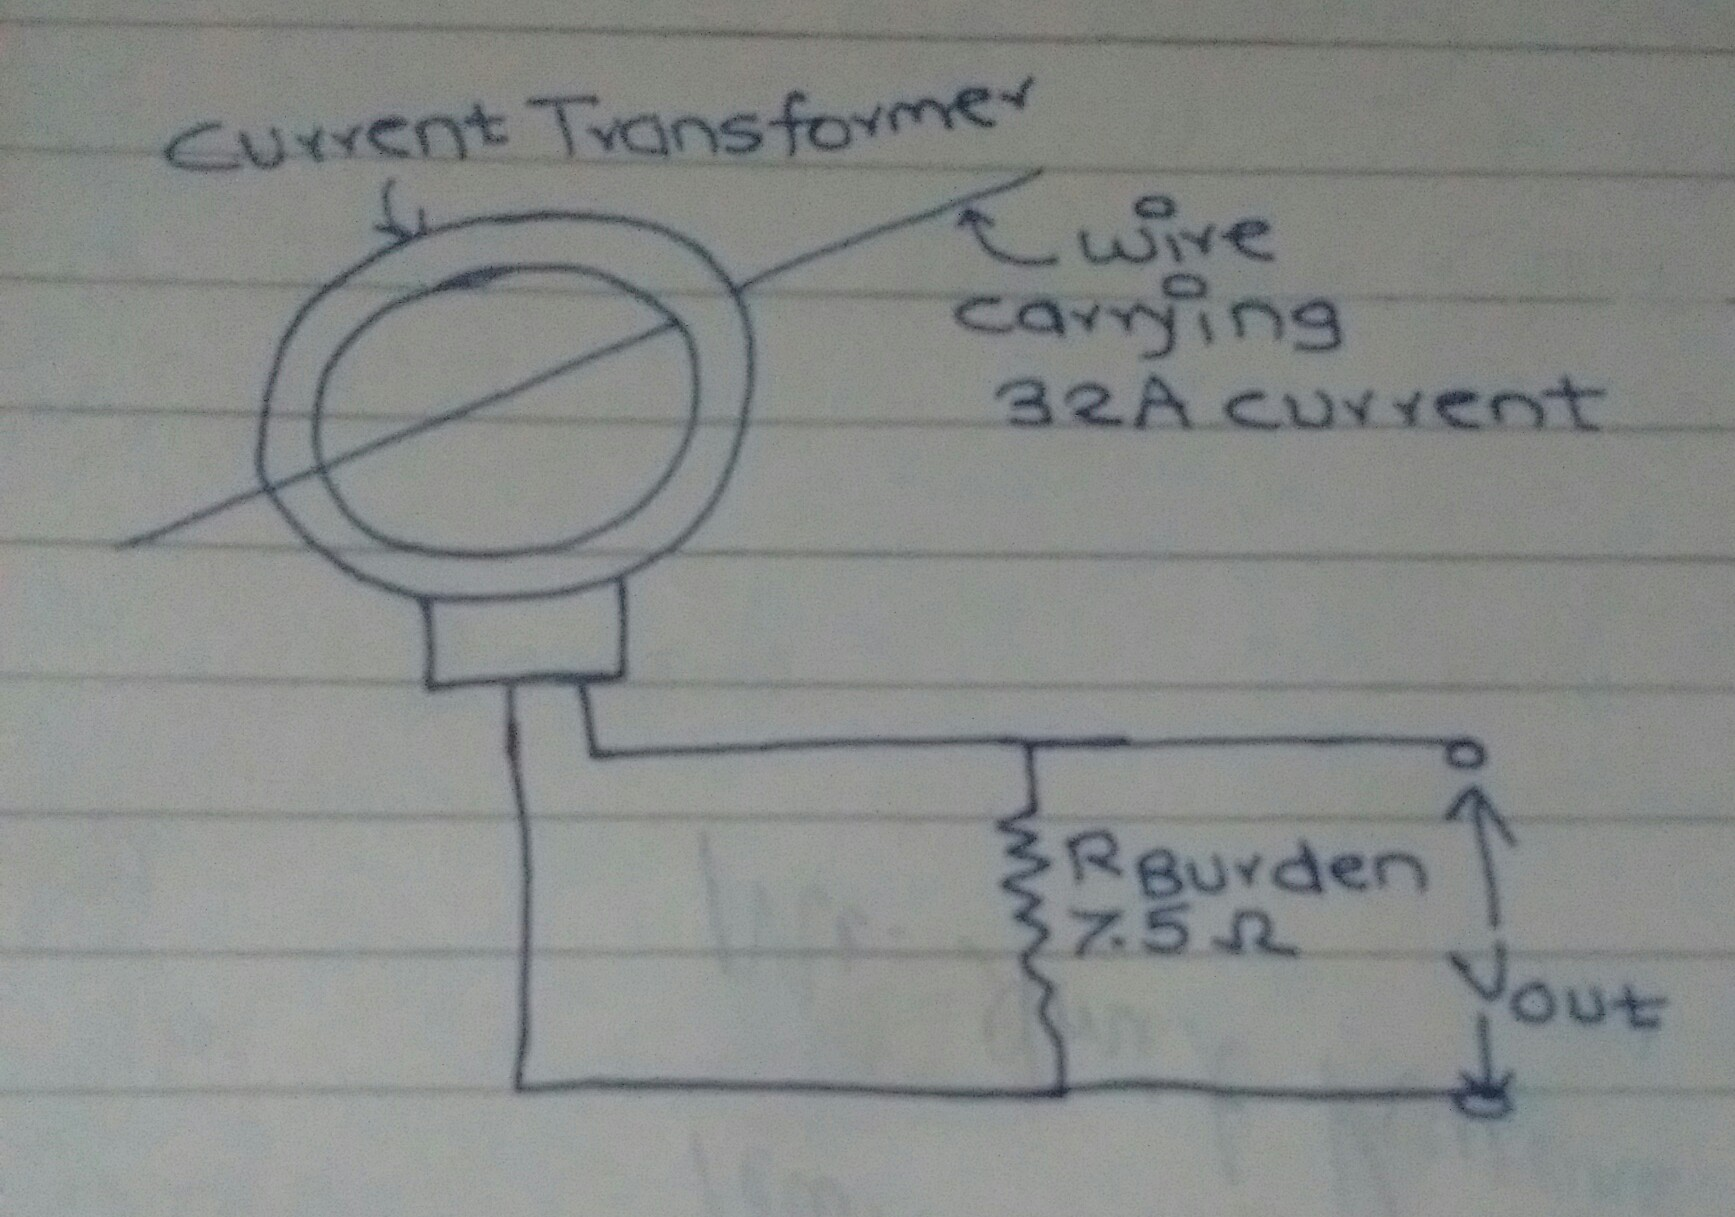 Tina Spice Dont Find Any Way To Create And Insert A Ctcurrent Instrument Transformer Wiring Diagram It Has Current Rating Of 32 I Want Measure This Convert Into Proportional Voltage Using Ct